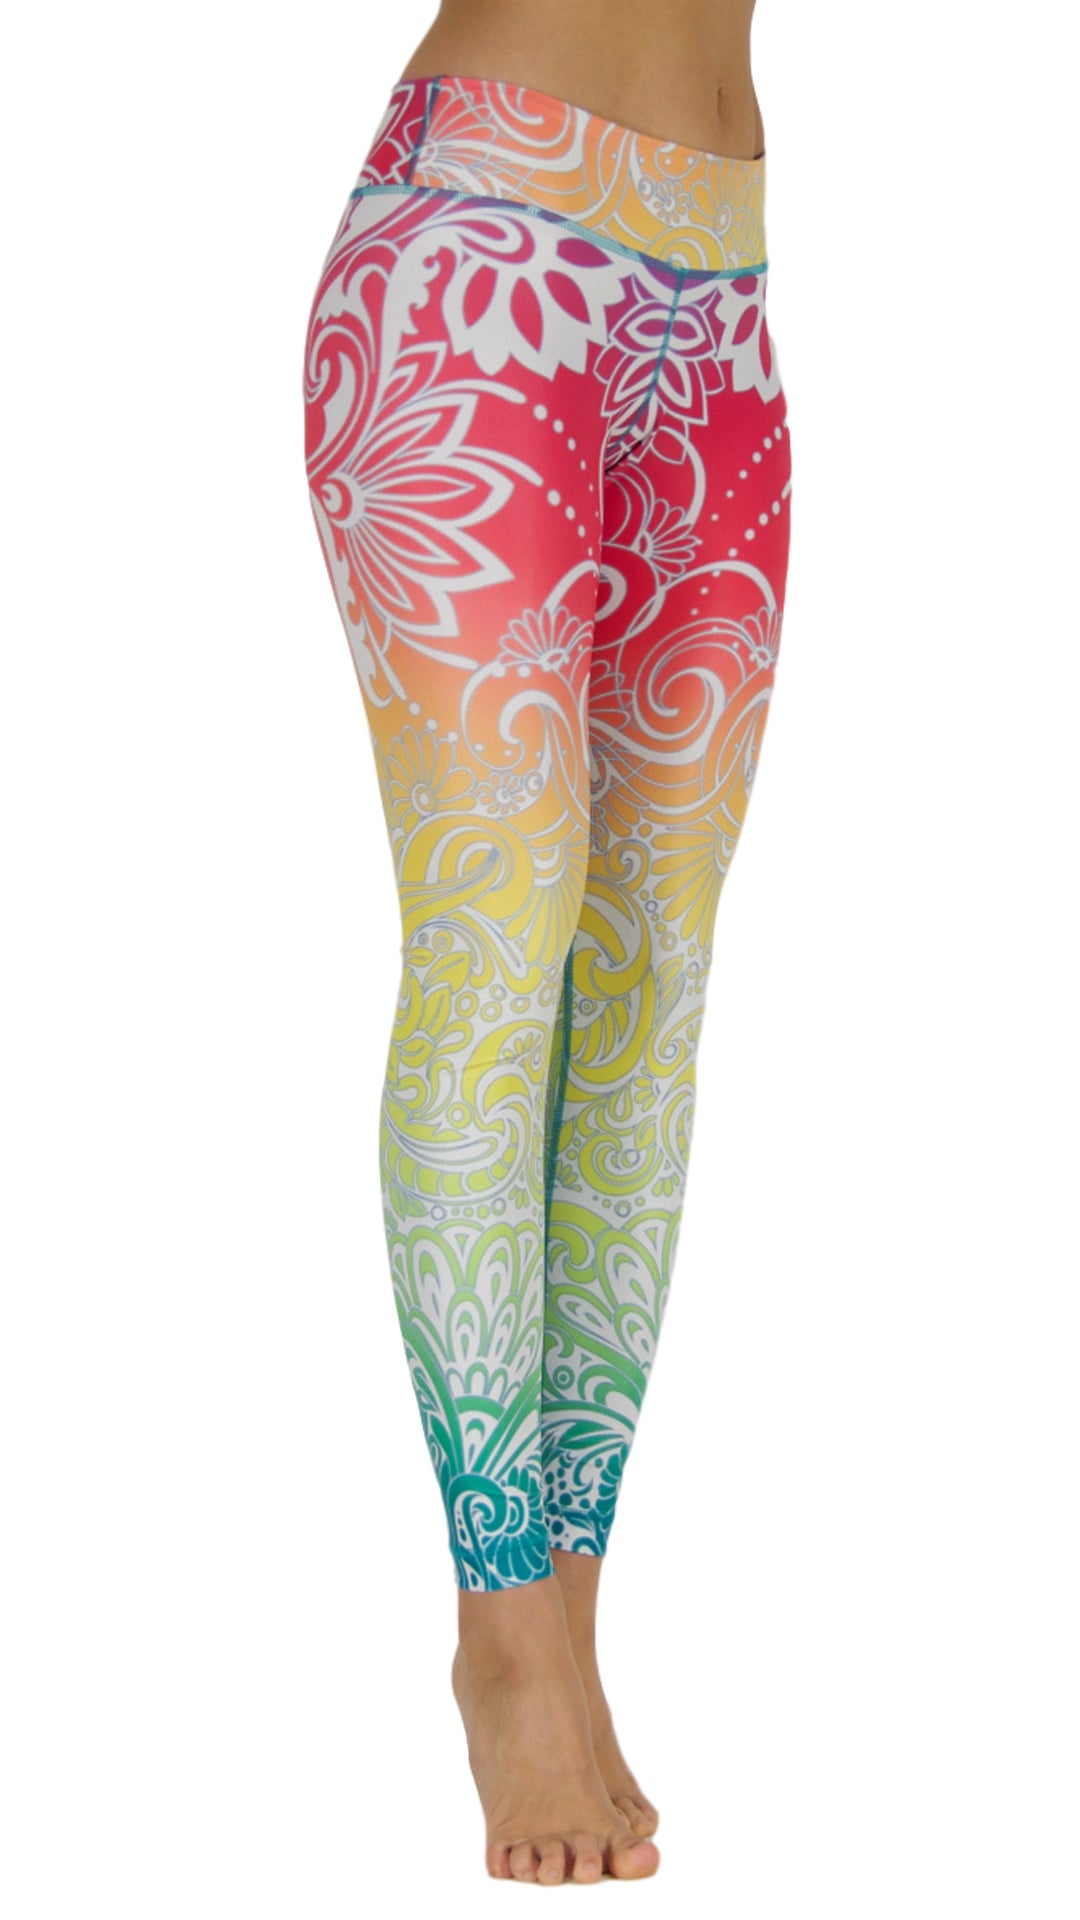 Barbados by Niyama - High Quality, Yoga Legging for Movement Artists.